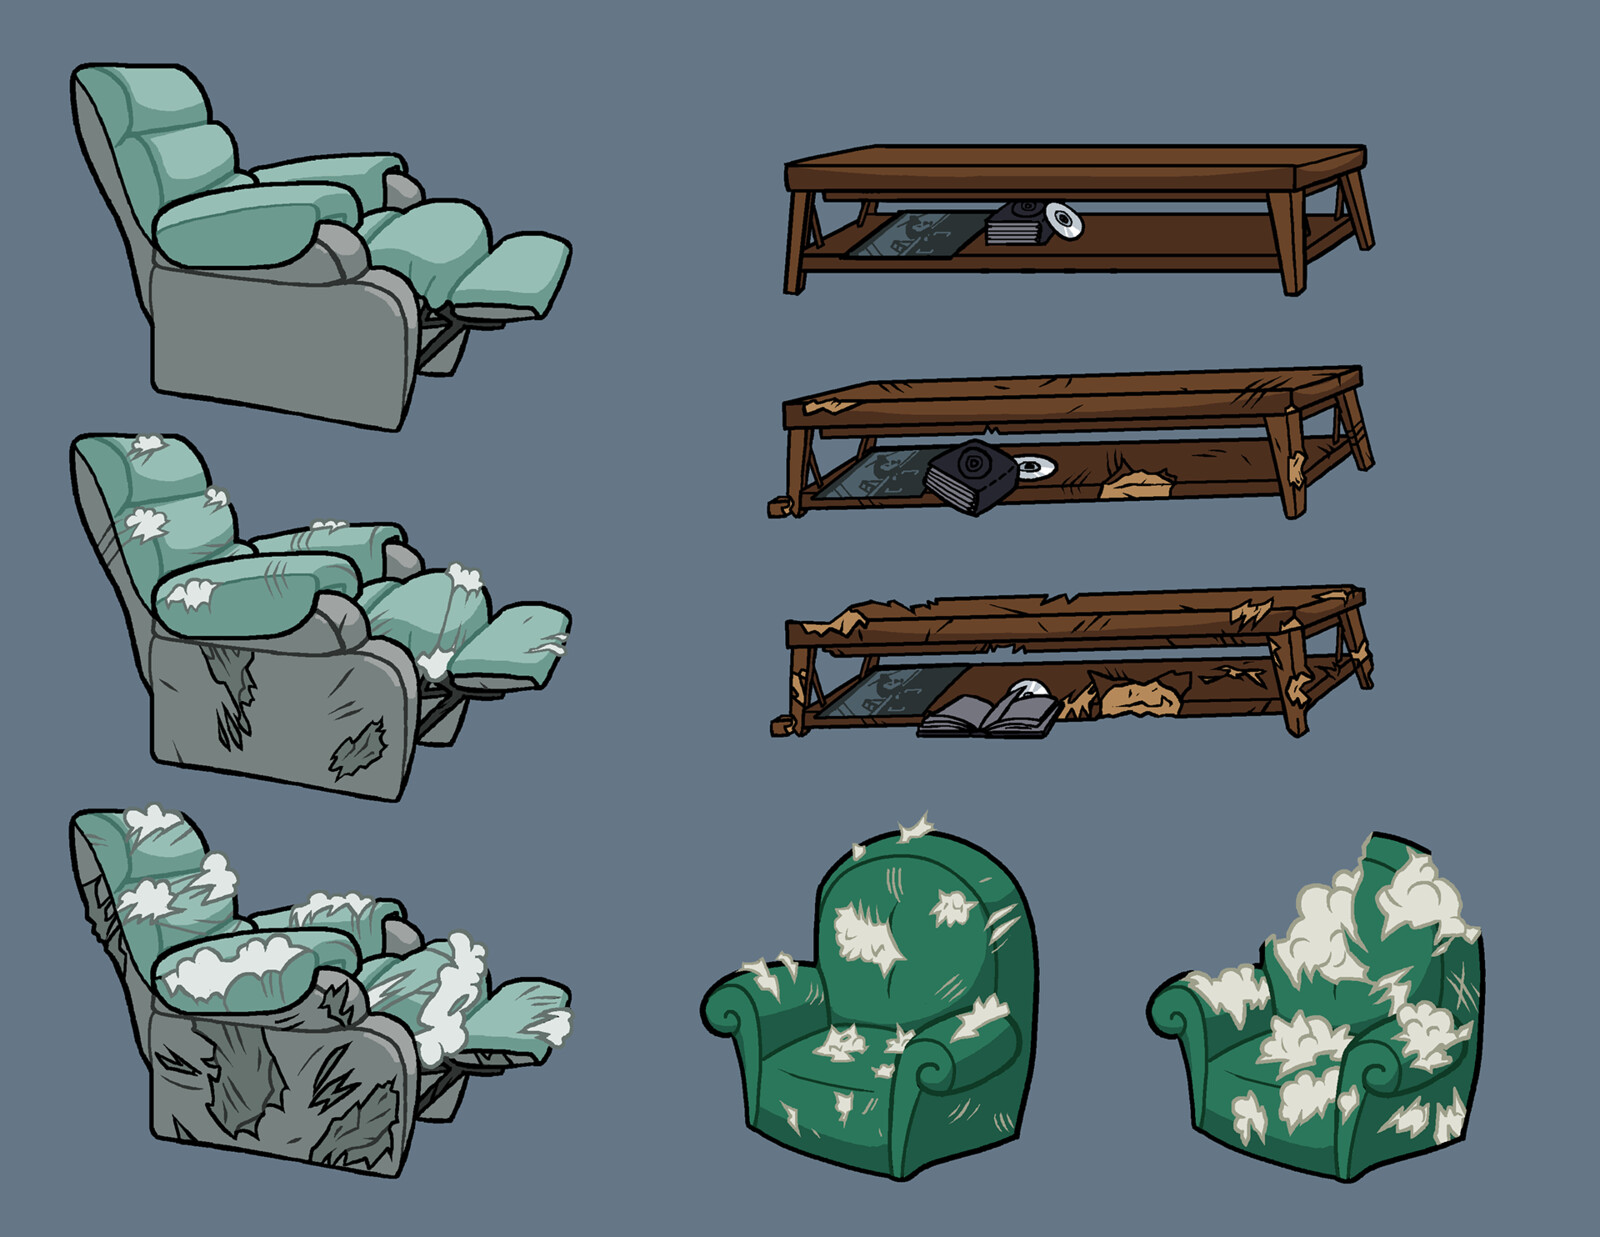 Objects and their stages of destruction